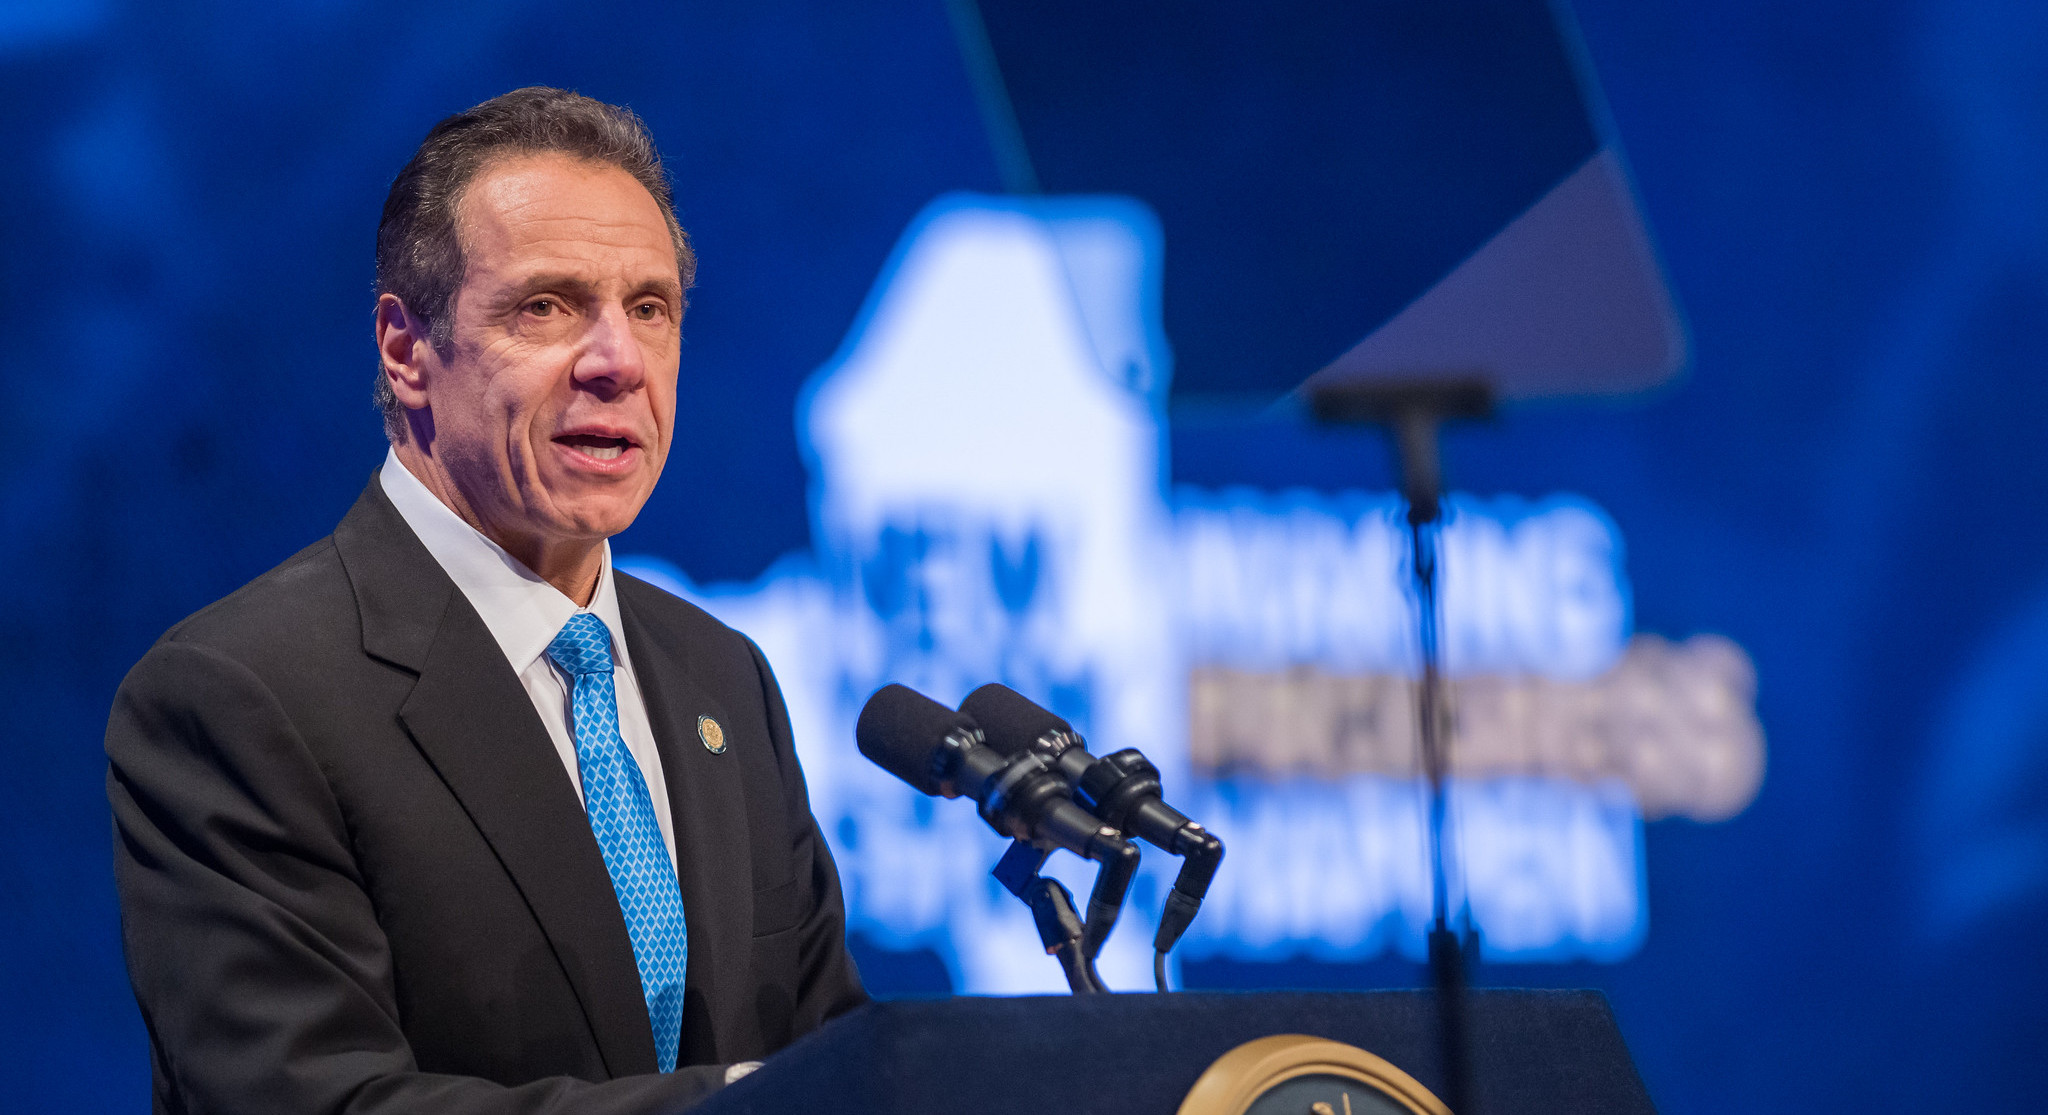 Governor Andrew Cuomo delivers his State of the State address